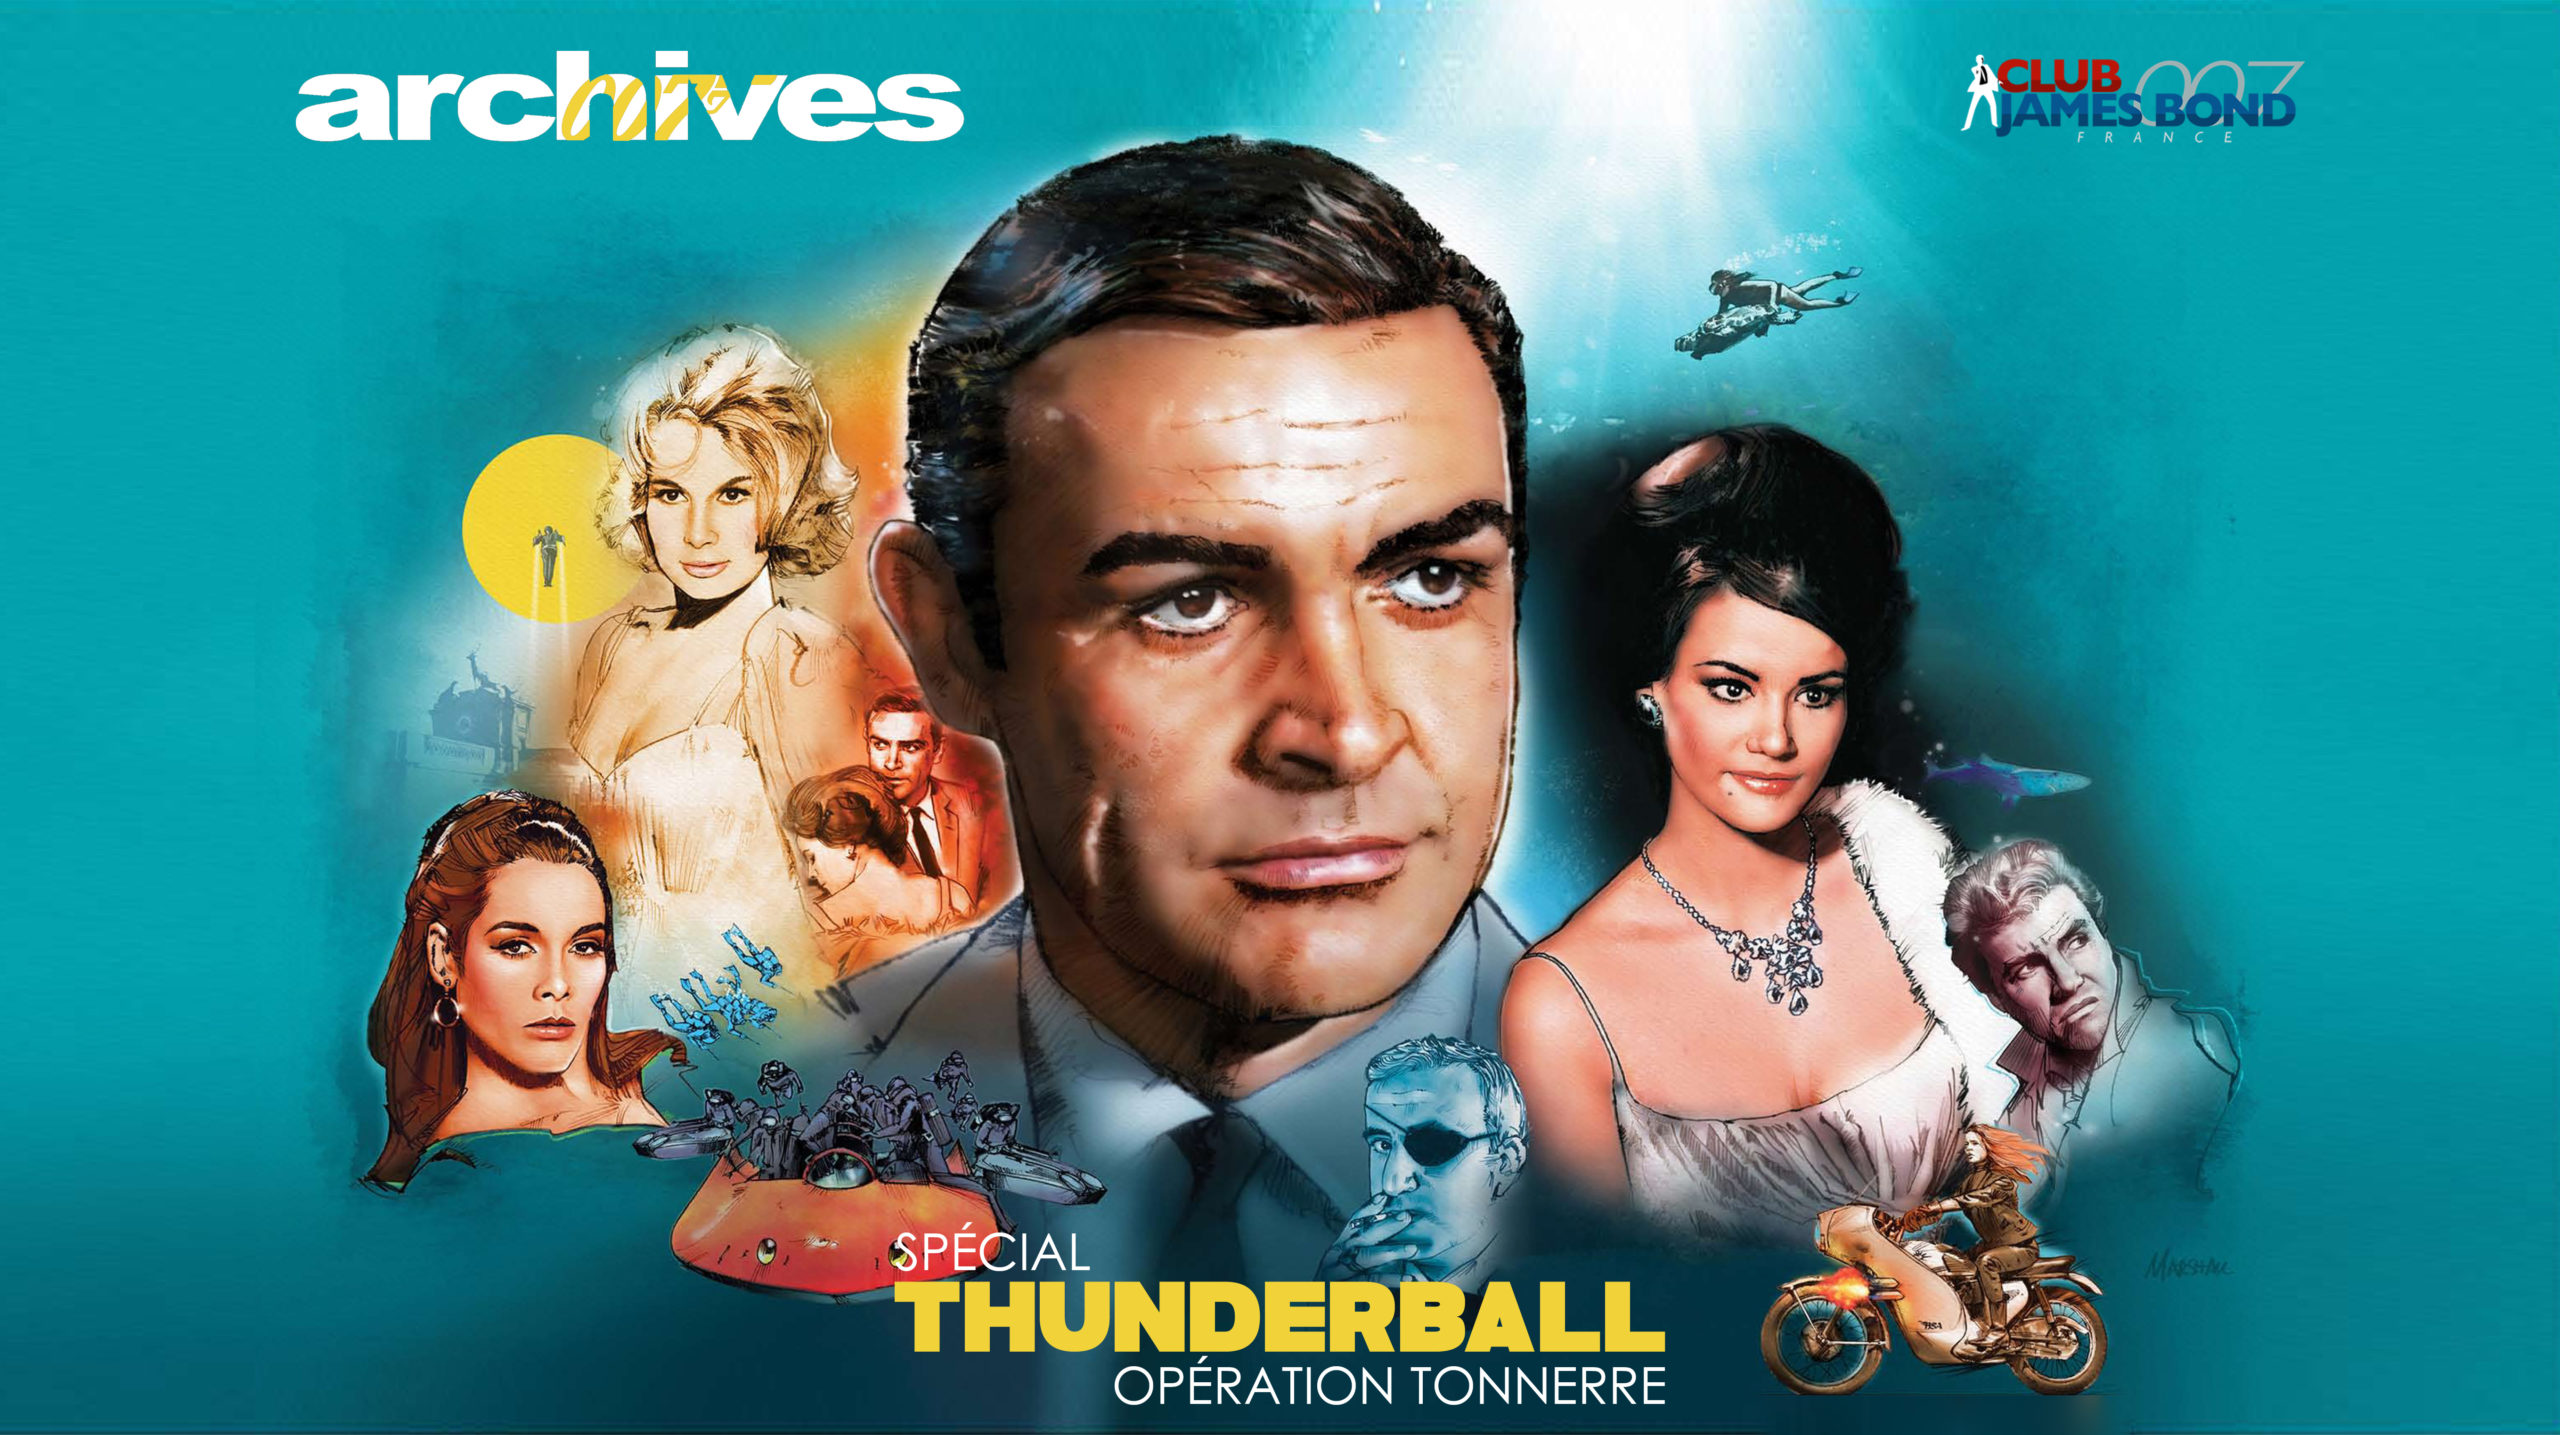 Archives 2020 : Thunderball à l'honneur